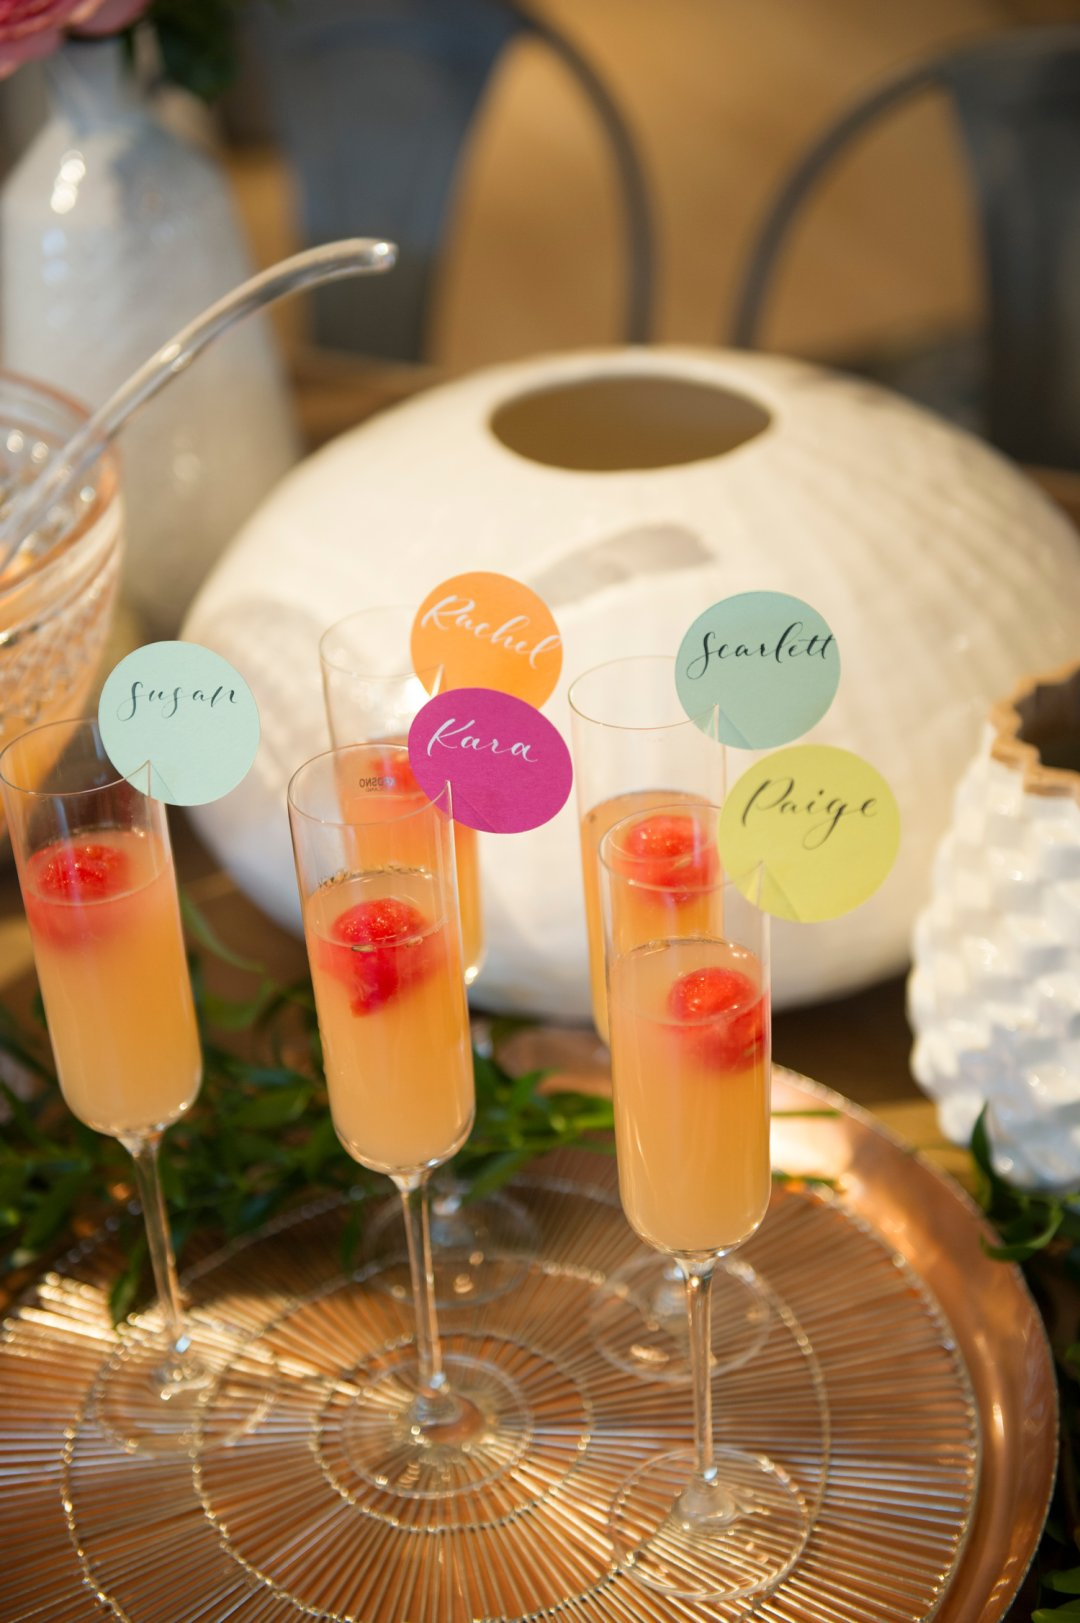 Orange mocktails on tray with name tags